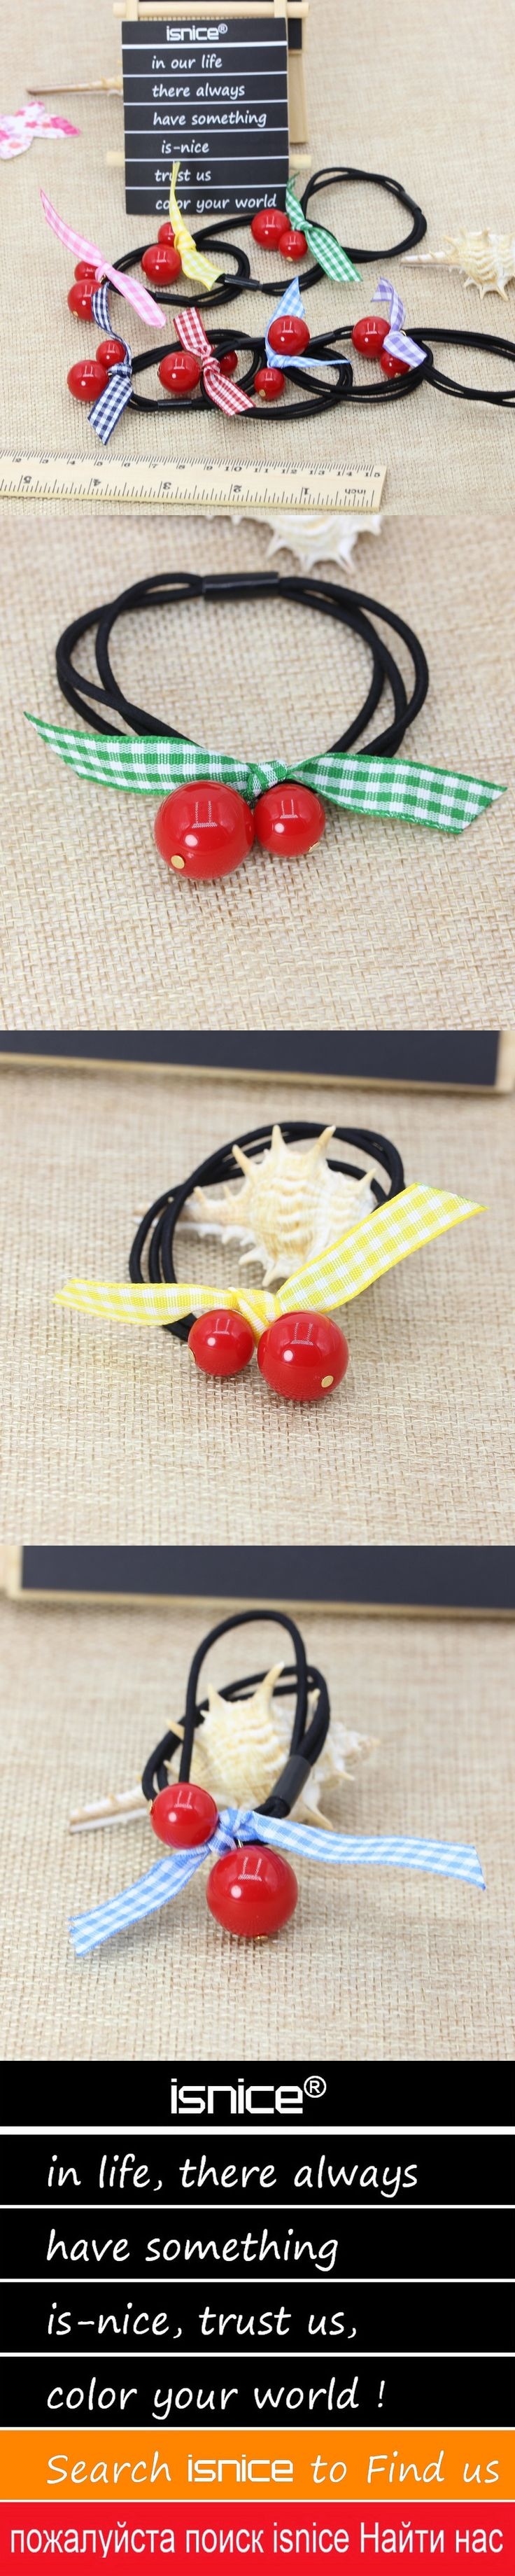 isnice Hair accessories for women wholesale hair bands red ball with belt headwear fashion girl hair ornaments haar